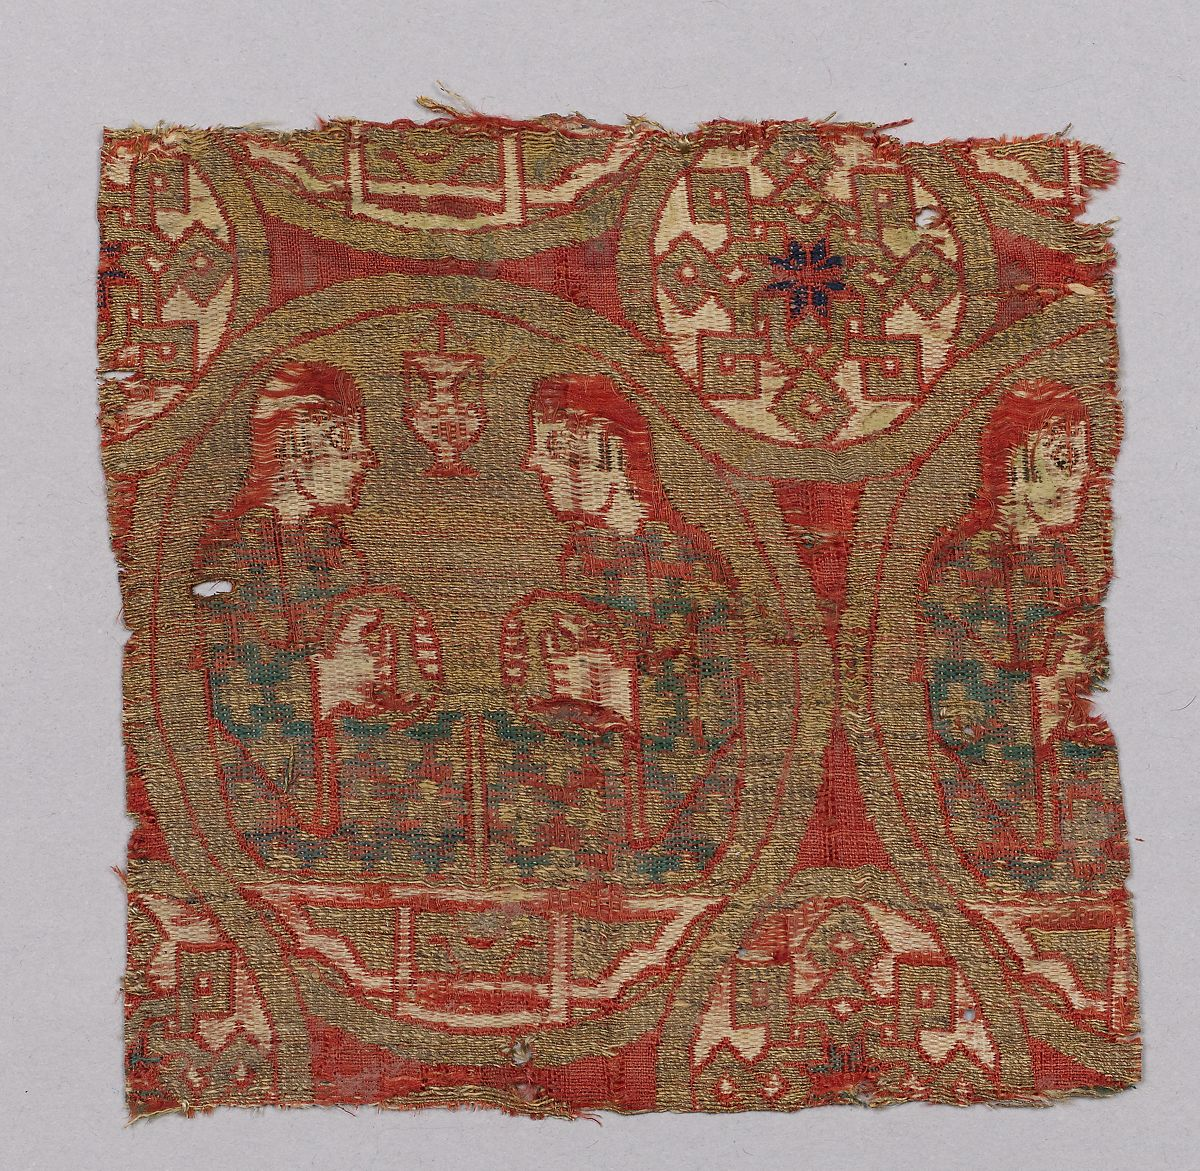 Textile with Musicians | The Met